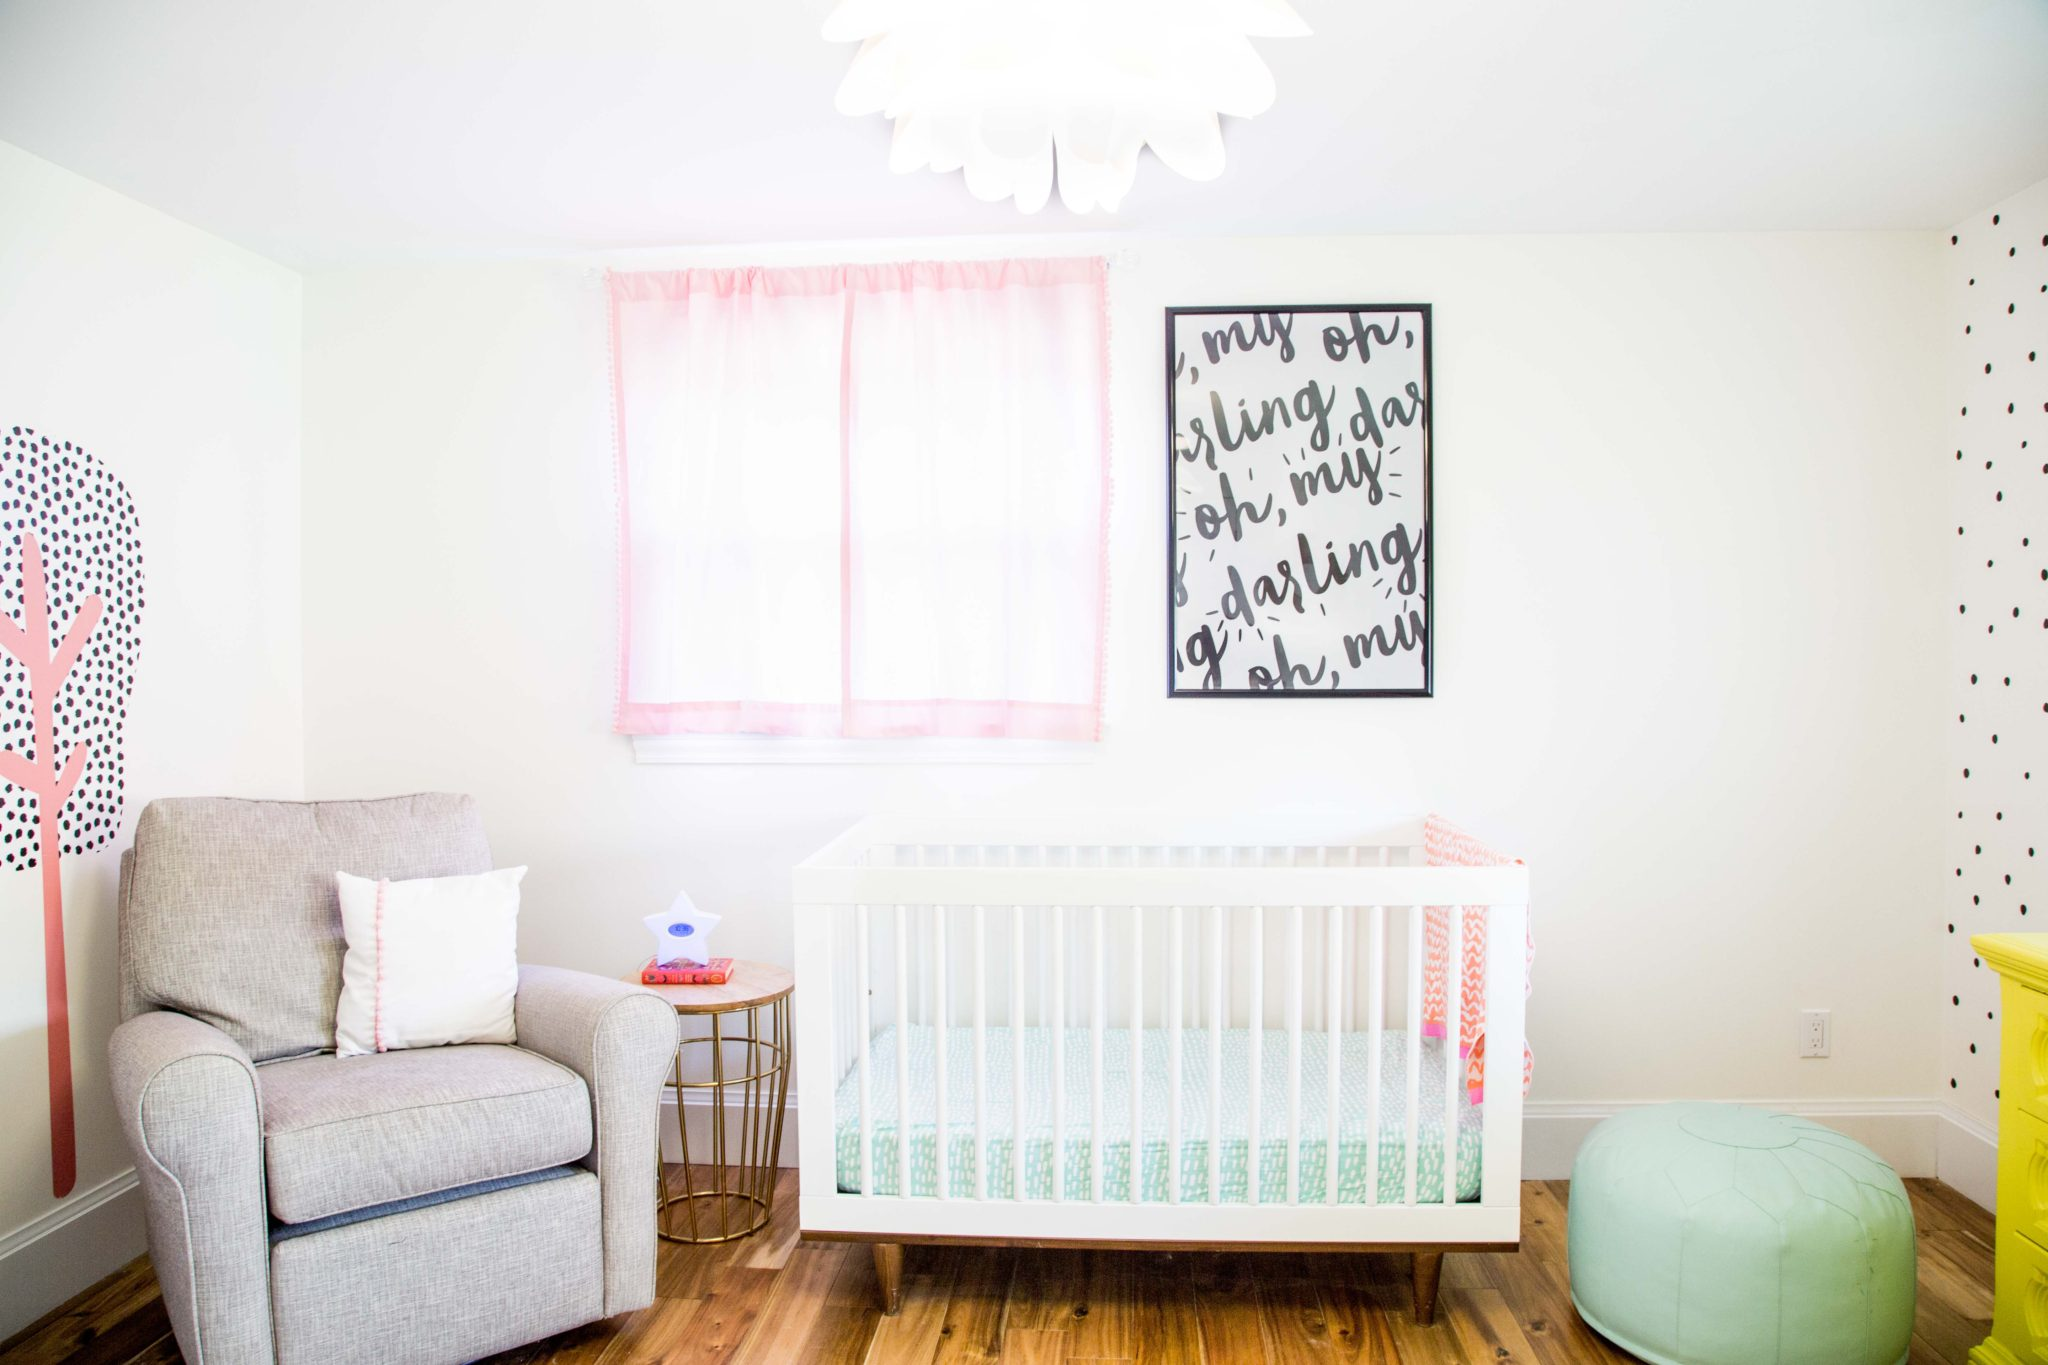 pretty and bright girls bedroom | bright nursery for baby girl | yellow dresser | the lovely wall co. decals | ikea picture ledge bookshelves | allweareblog.com